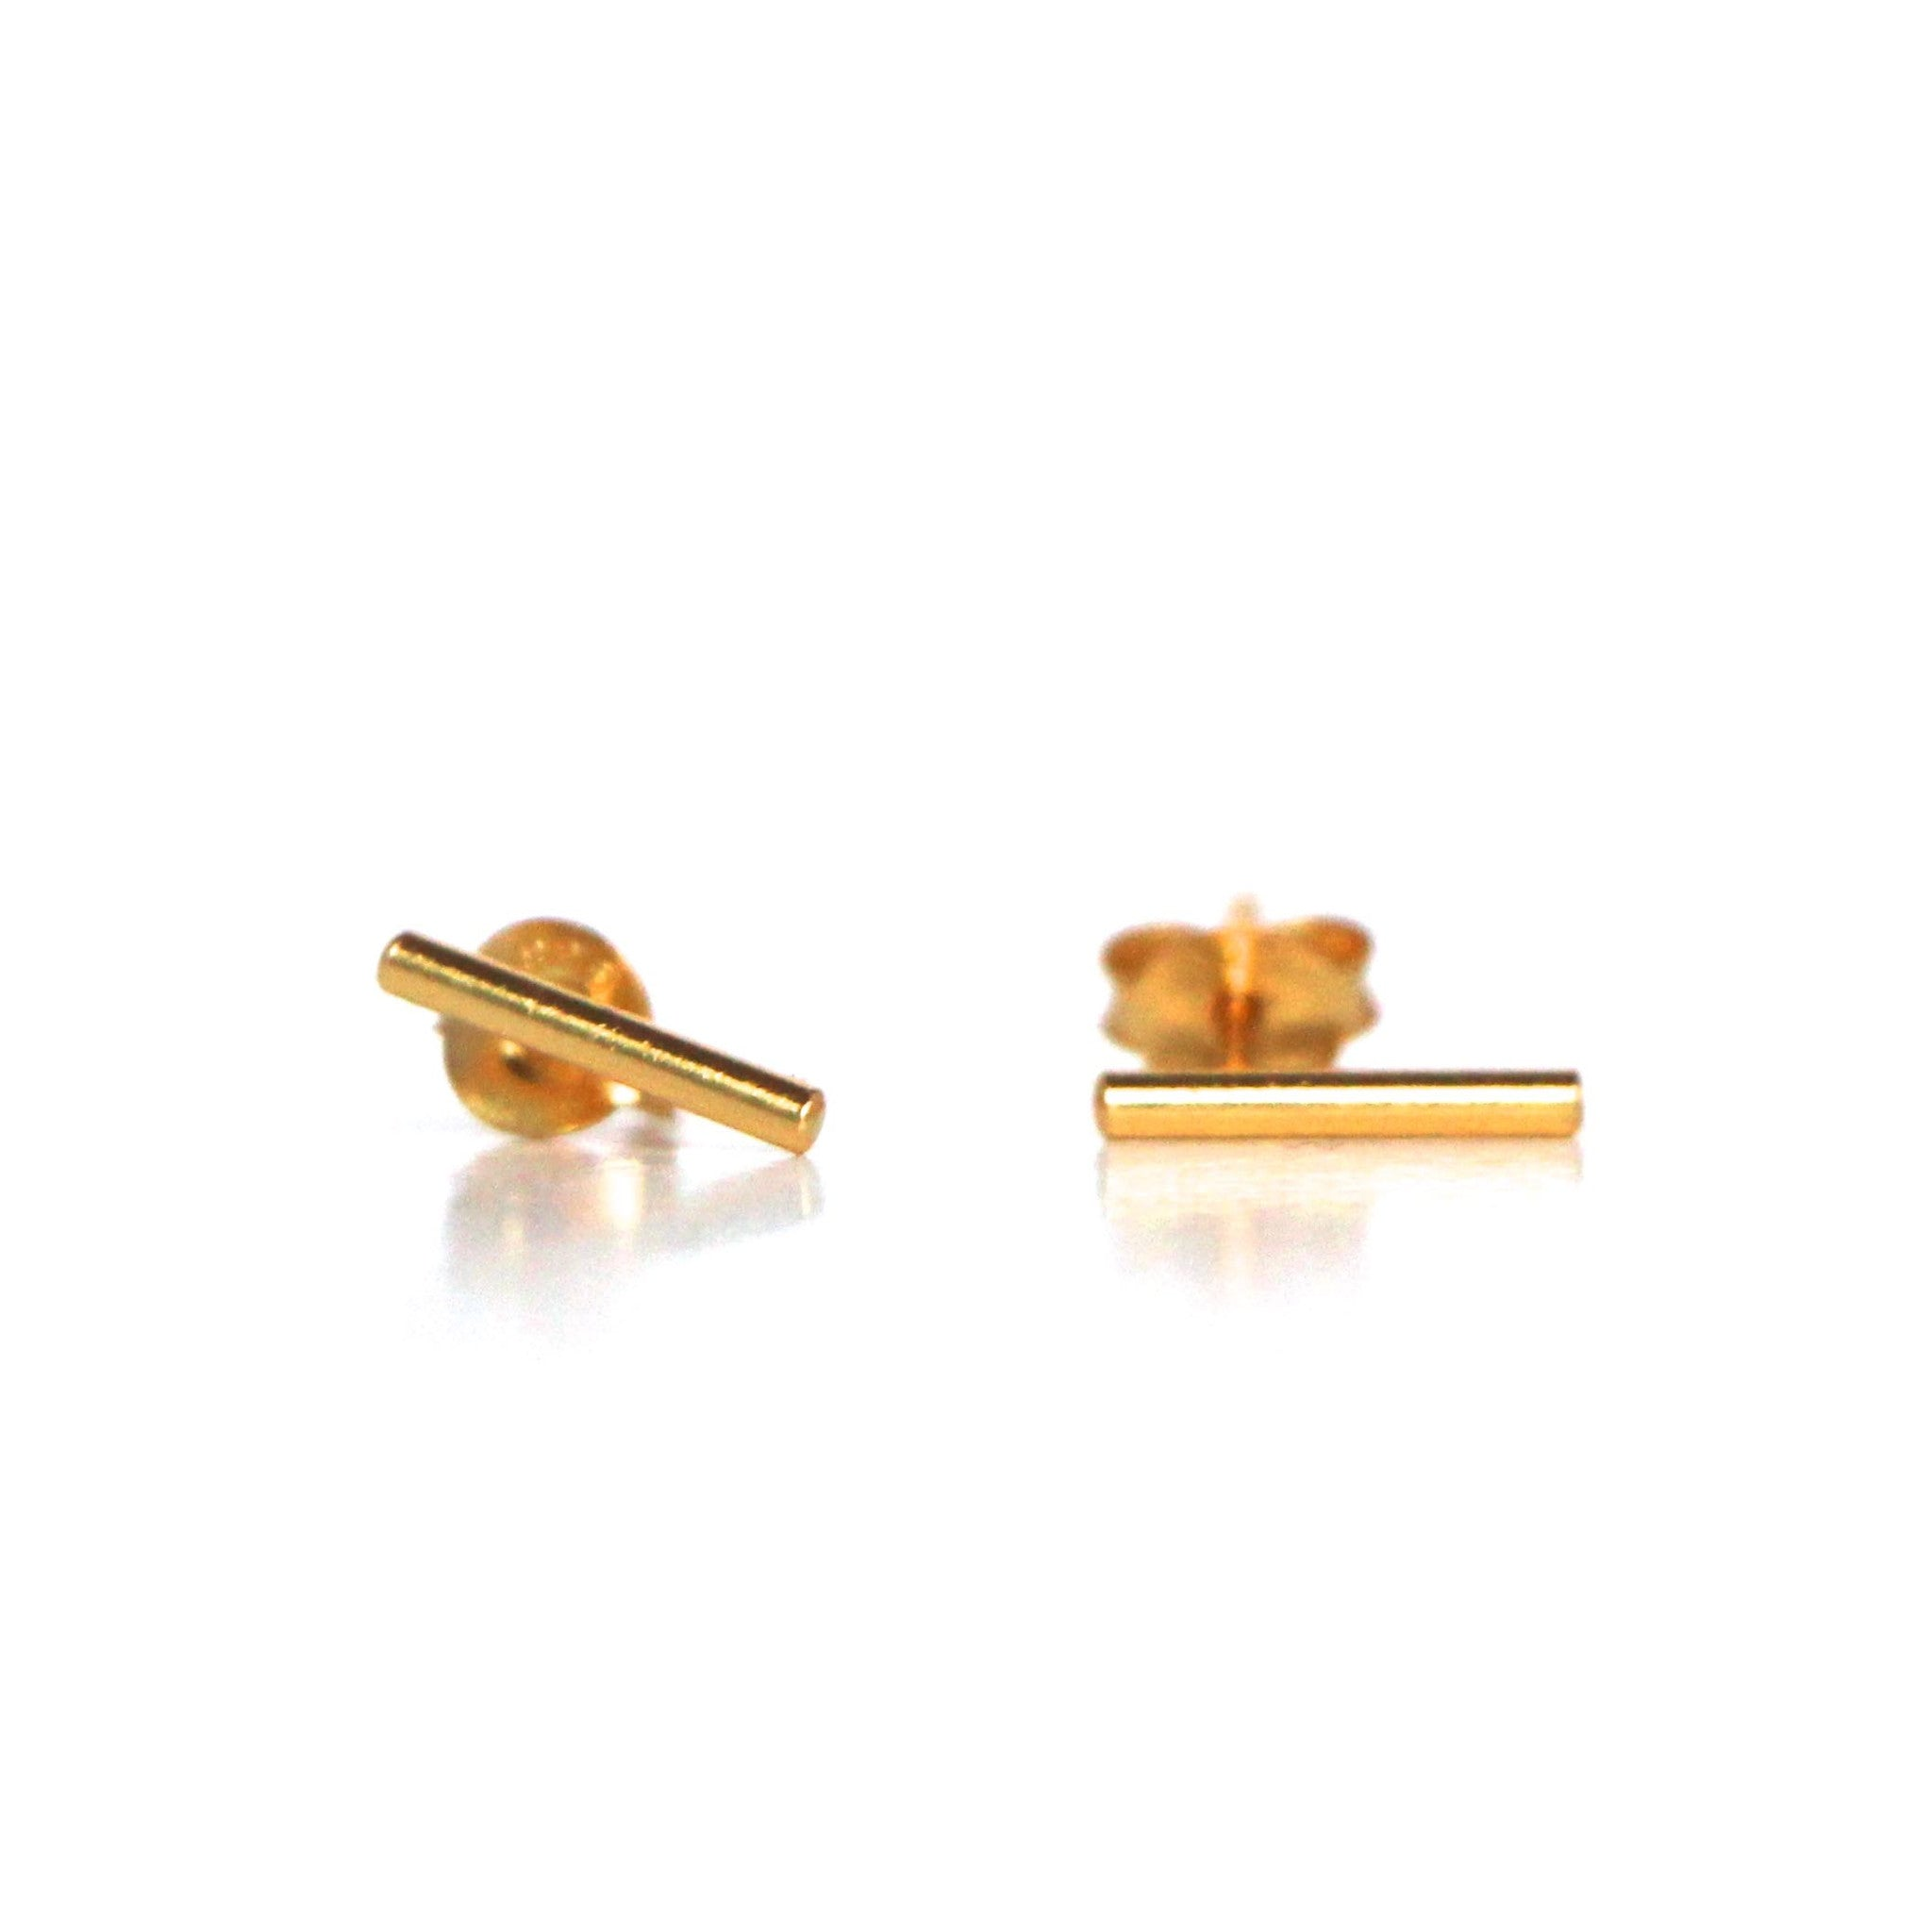 on by earrings etsy delicate vermeil pin s naomitraczjewellery stud gold